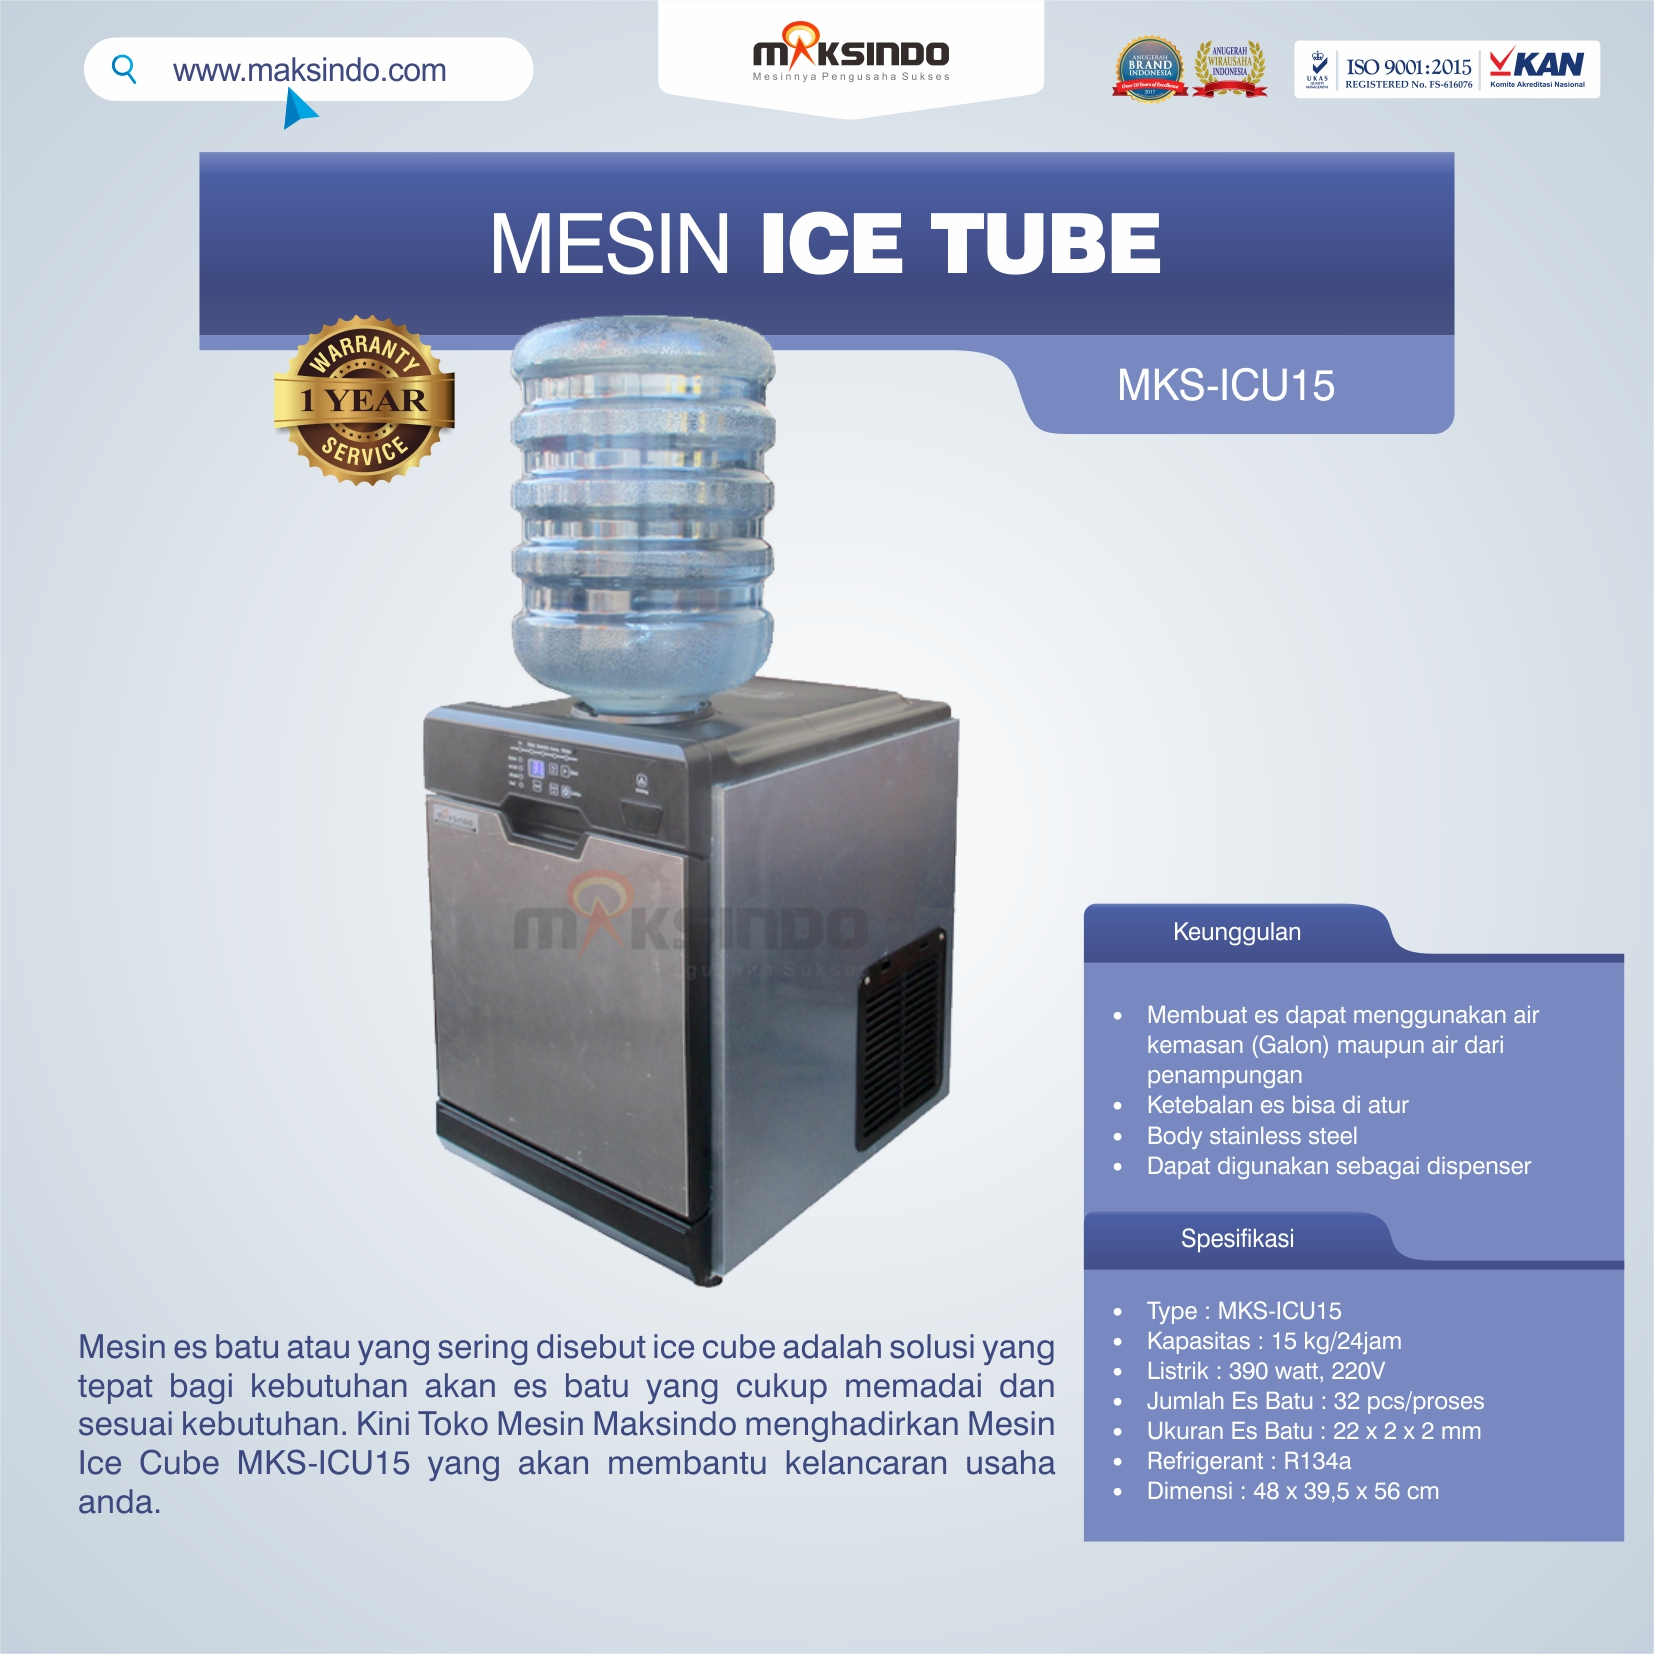 Mesin Ice Cube MKS-ICU15